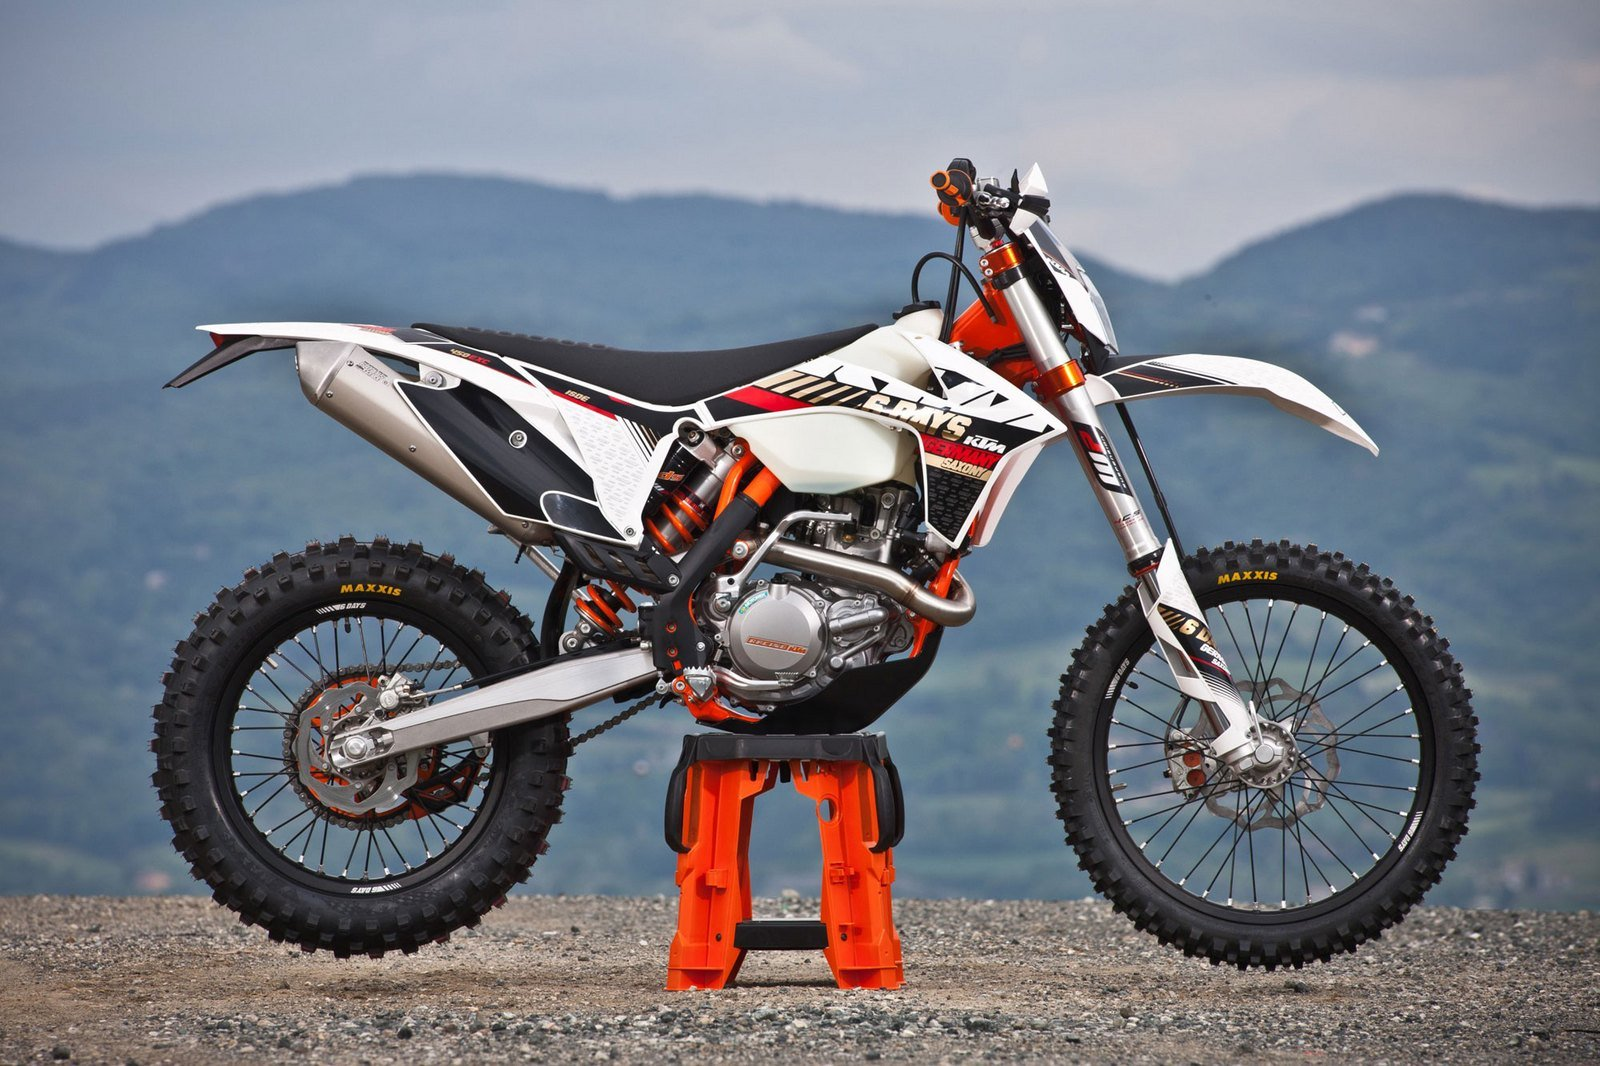 2013 ktm 450 exc six days picture 492988 motorcycle review top speed. Black Bedroom Furniture Sets. Home Design Ideas